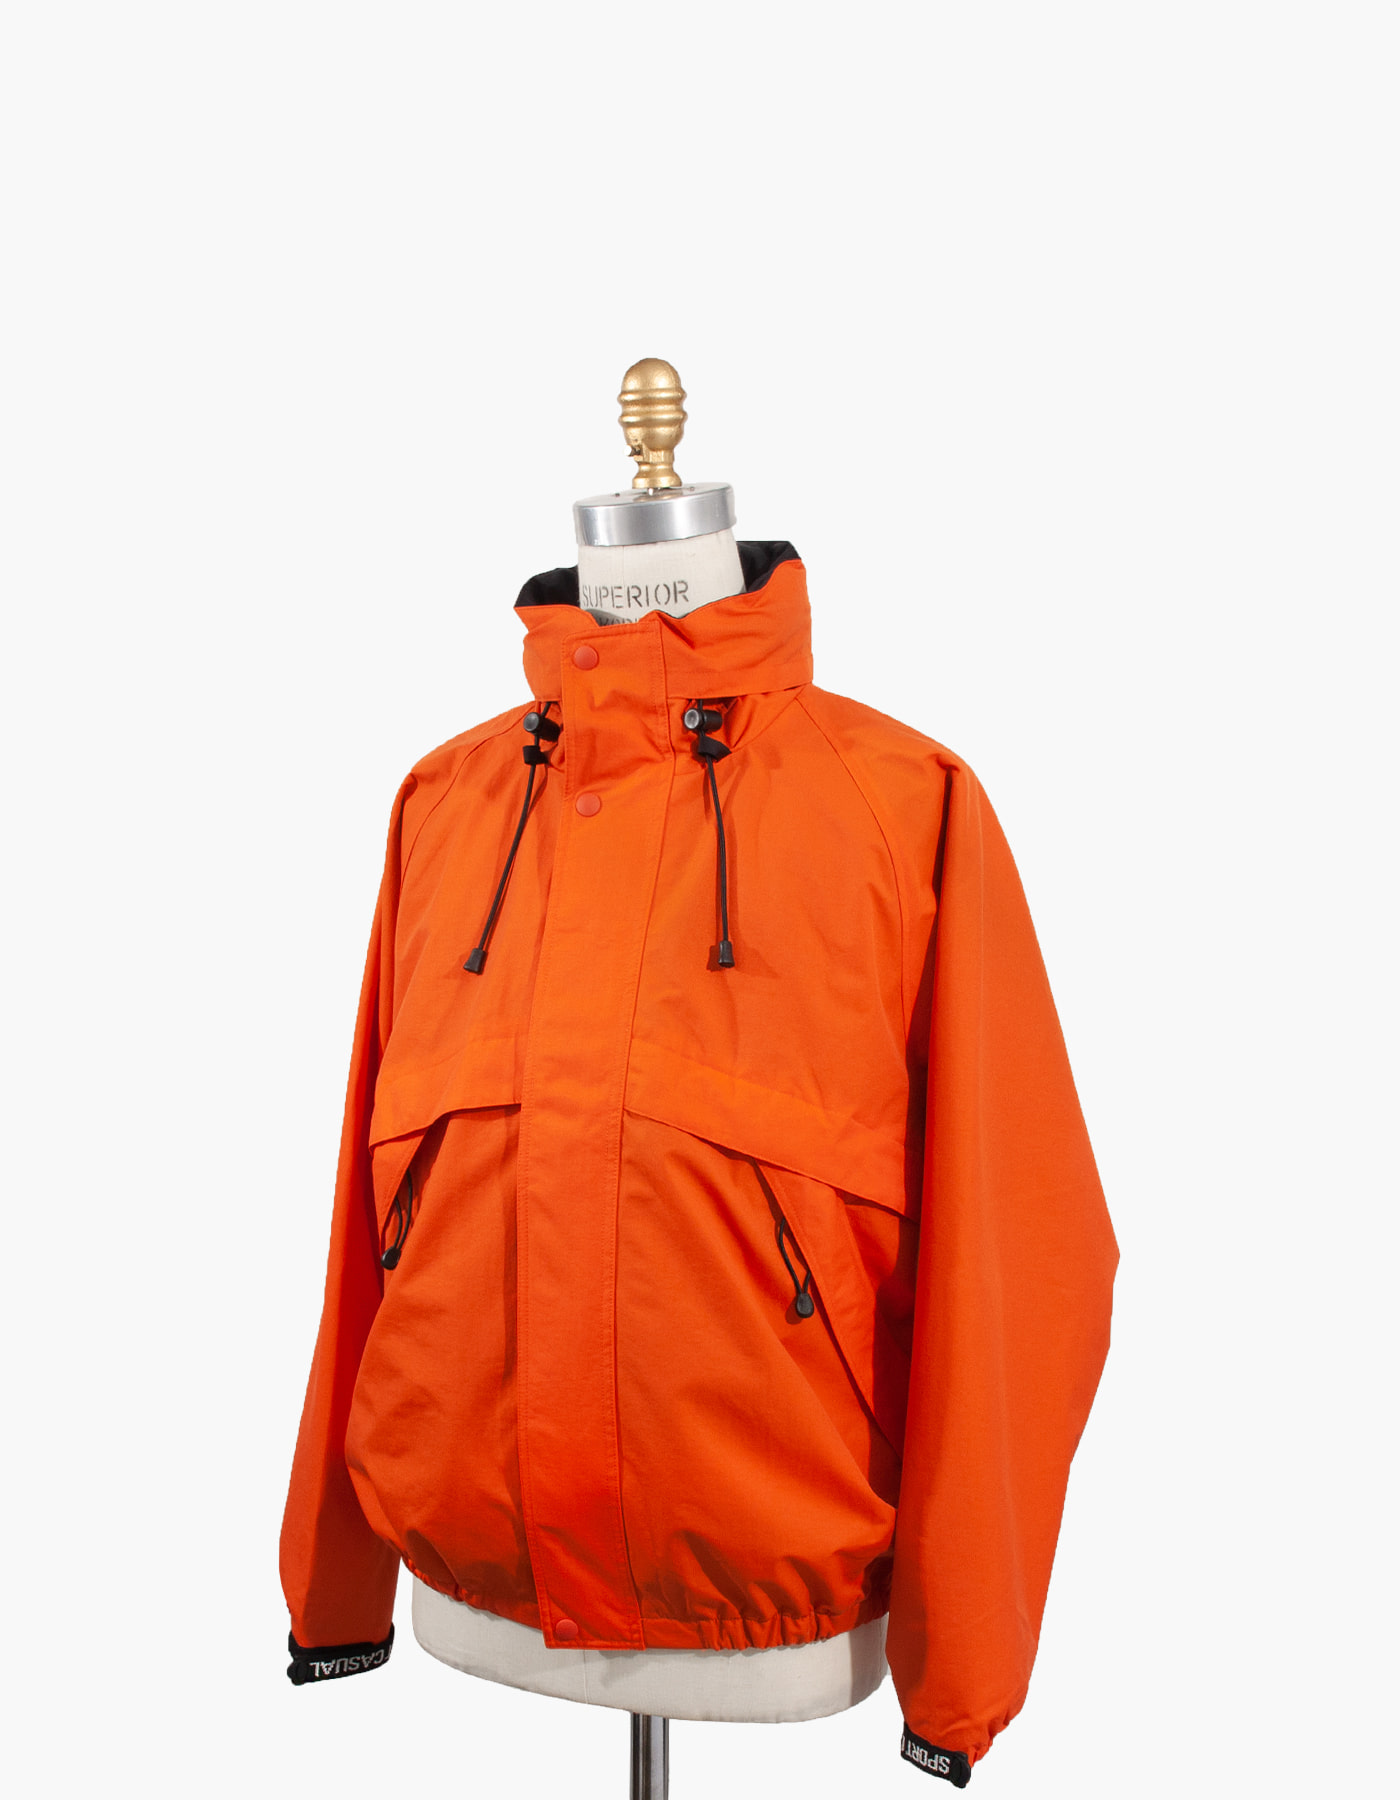 SAILING JACKET / ORANGE